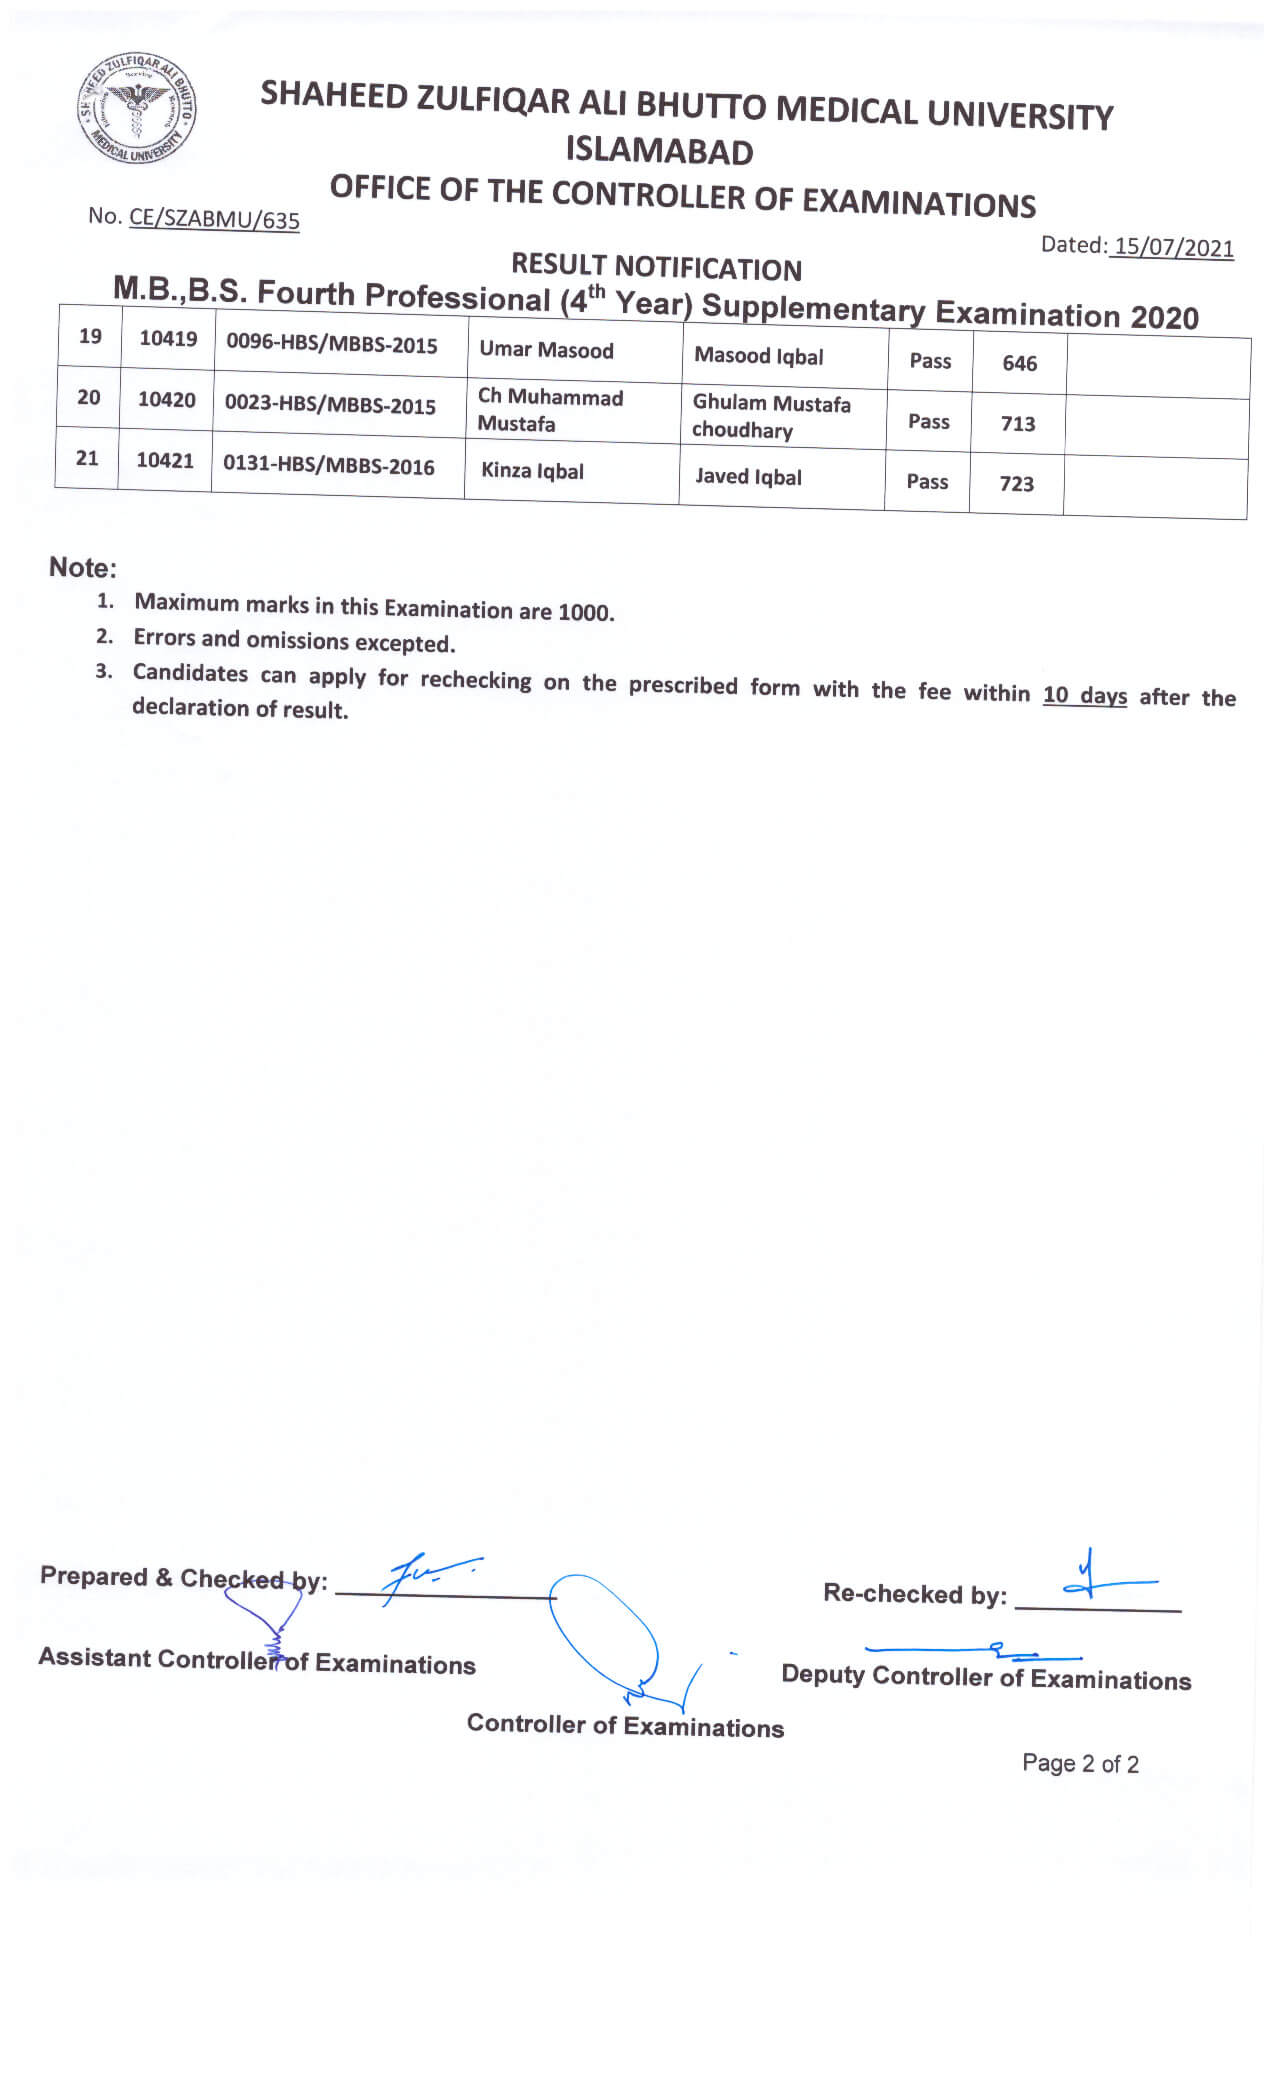 Result Notification - MBBS 4th Professional Supplementary Examination 2020